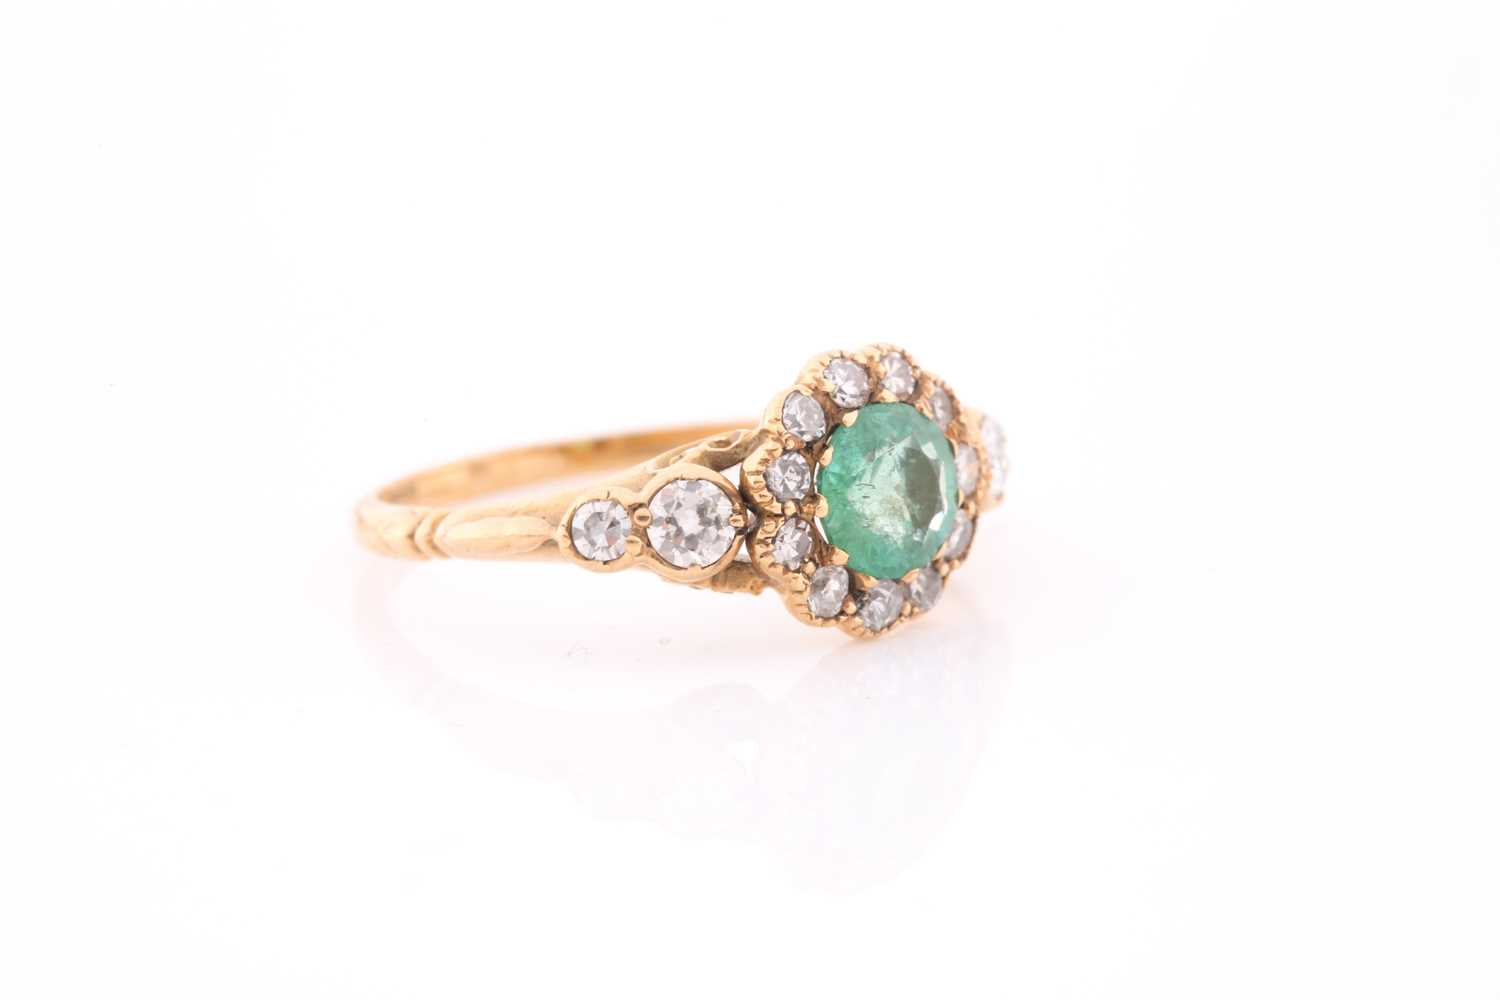 An 18ct yellow gold, diamond, and emerald ring, set with a mixed round-cut emerald, approximately - Image 4 of 4